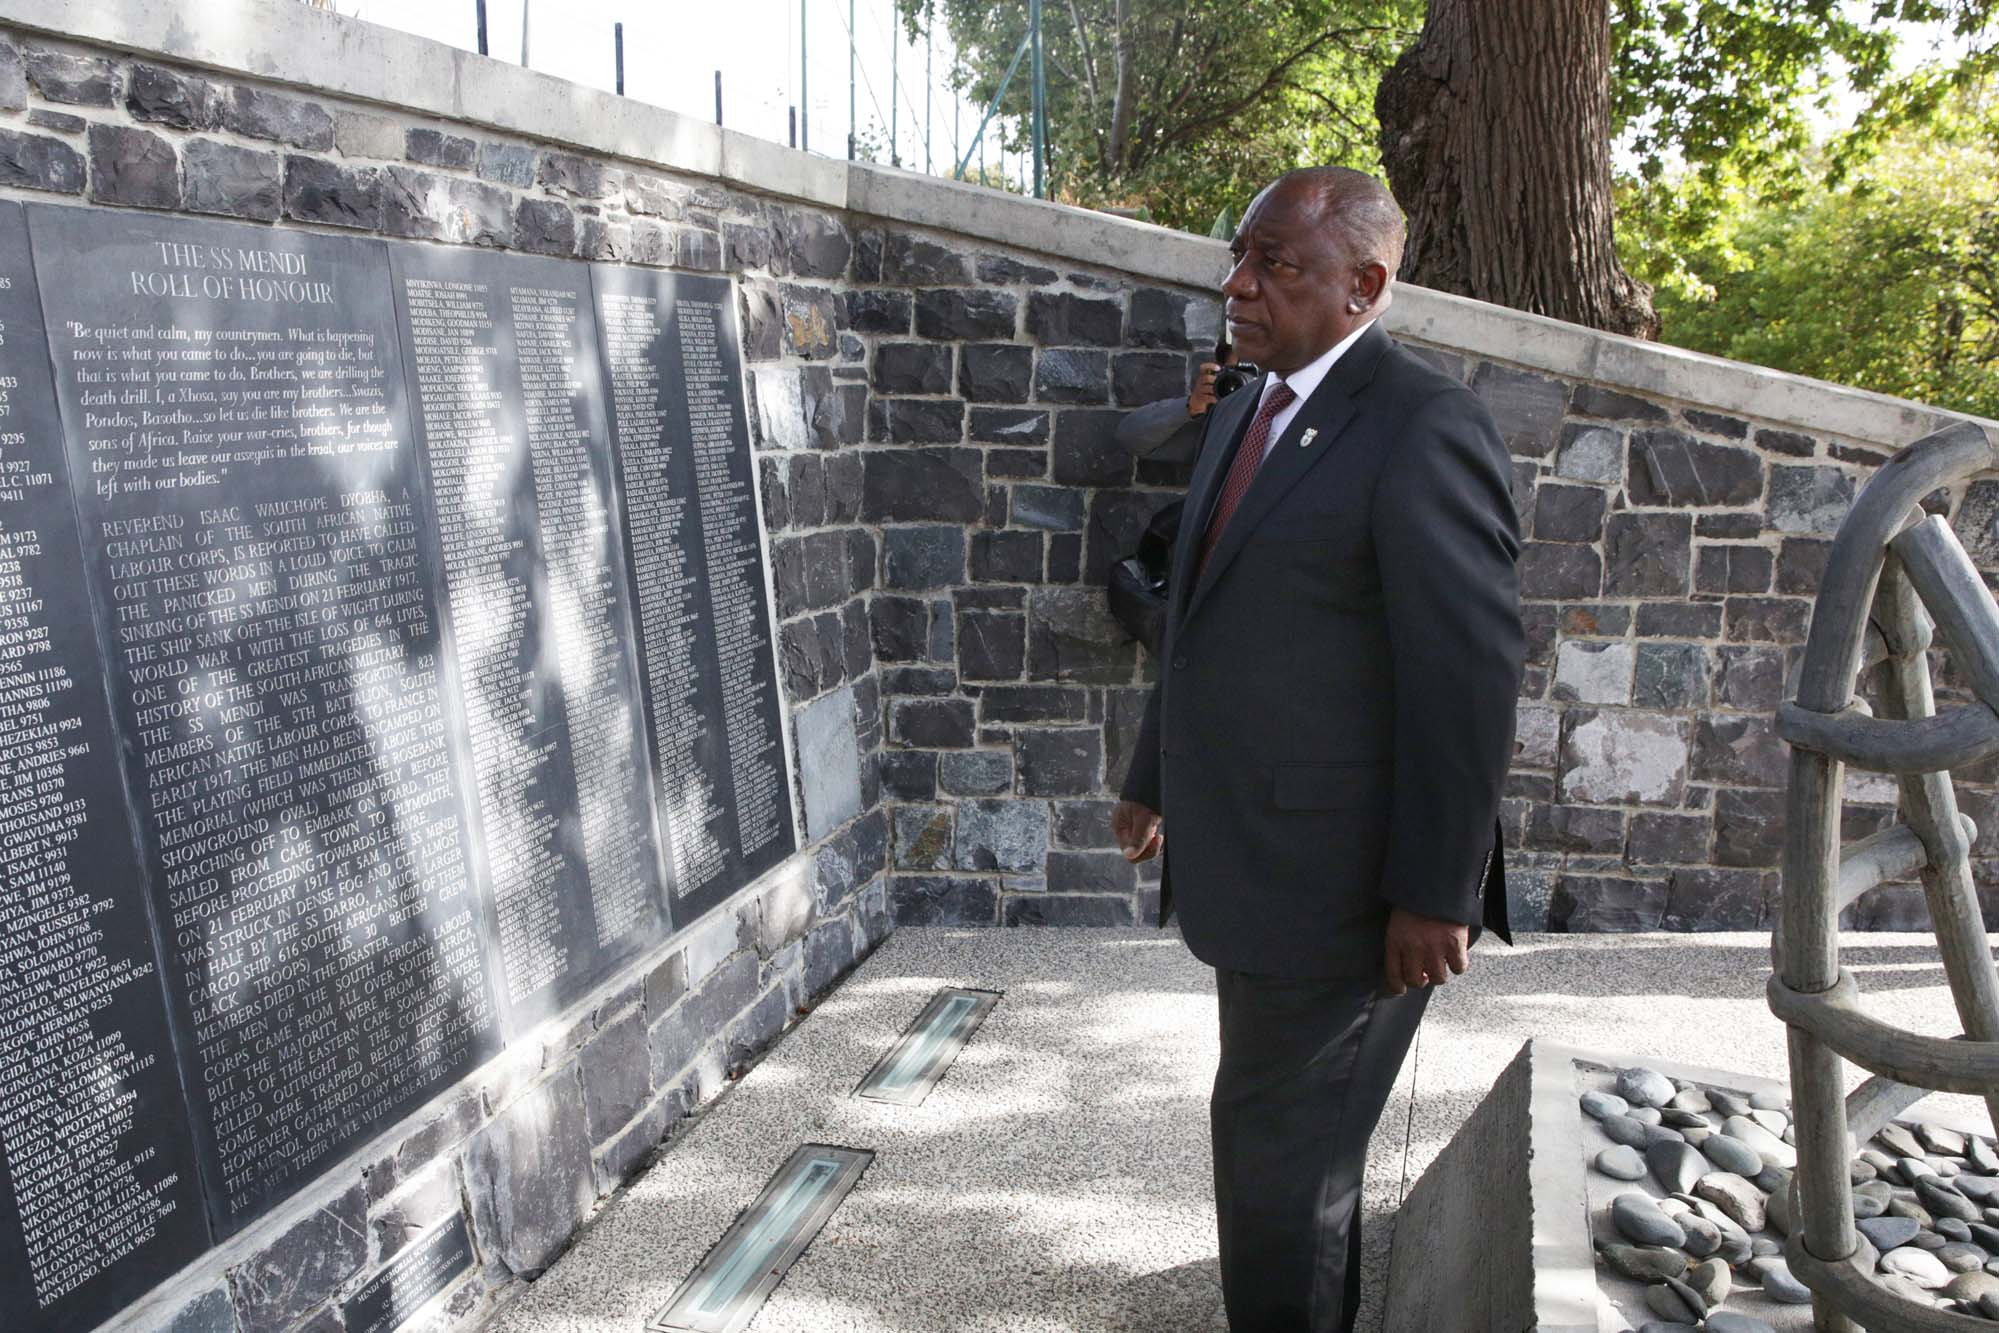 President Cyril Ramaphosa visited lower campus on 21 February to lay a wreath at the SS <i>Mendi</i> Memorial in honour of the South African soldiers who died when the ship sank in 1917.